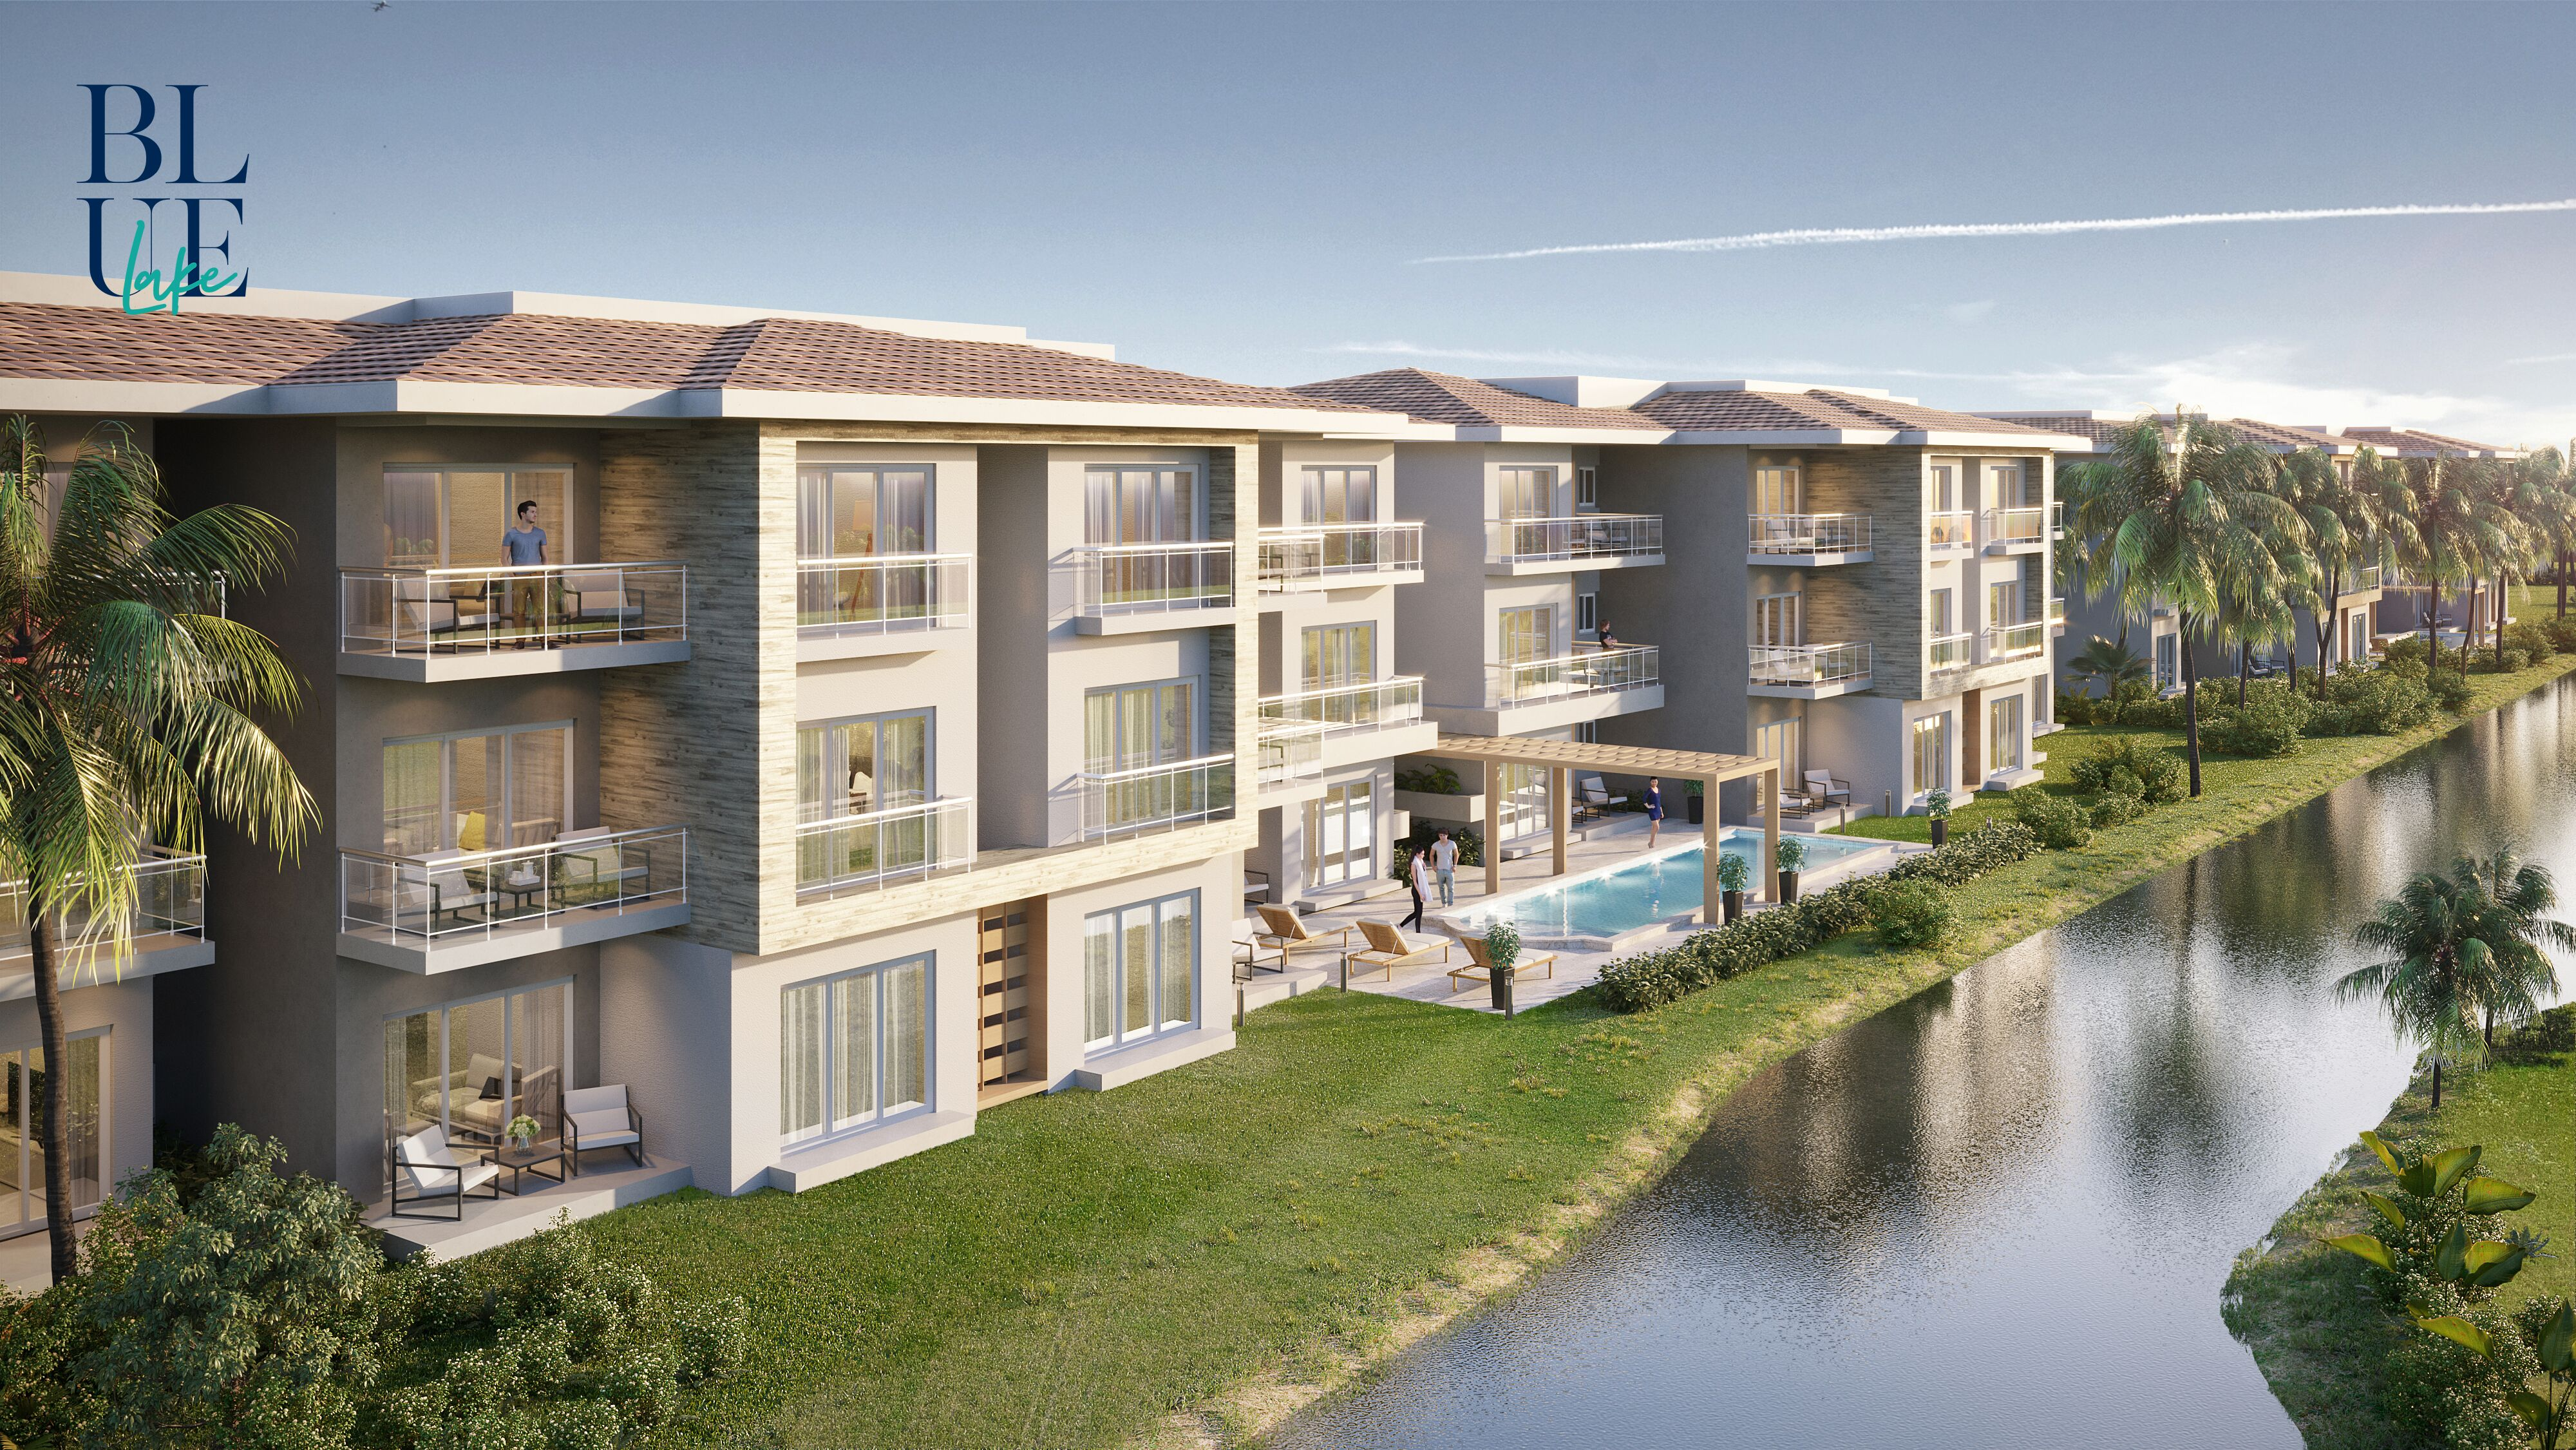 NEW 2 AND 3 BEDROOM APARTMENTS IN BLUE LAKE RESIDENTIAL (BL-C)